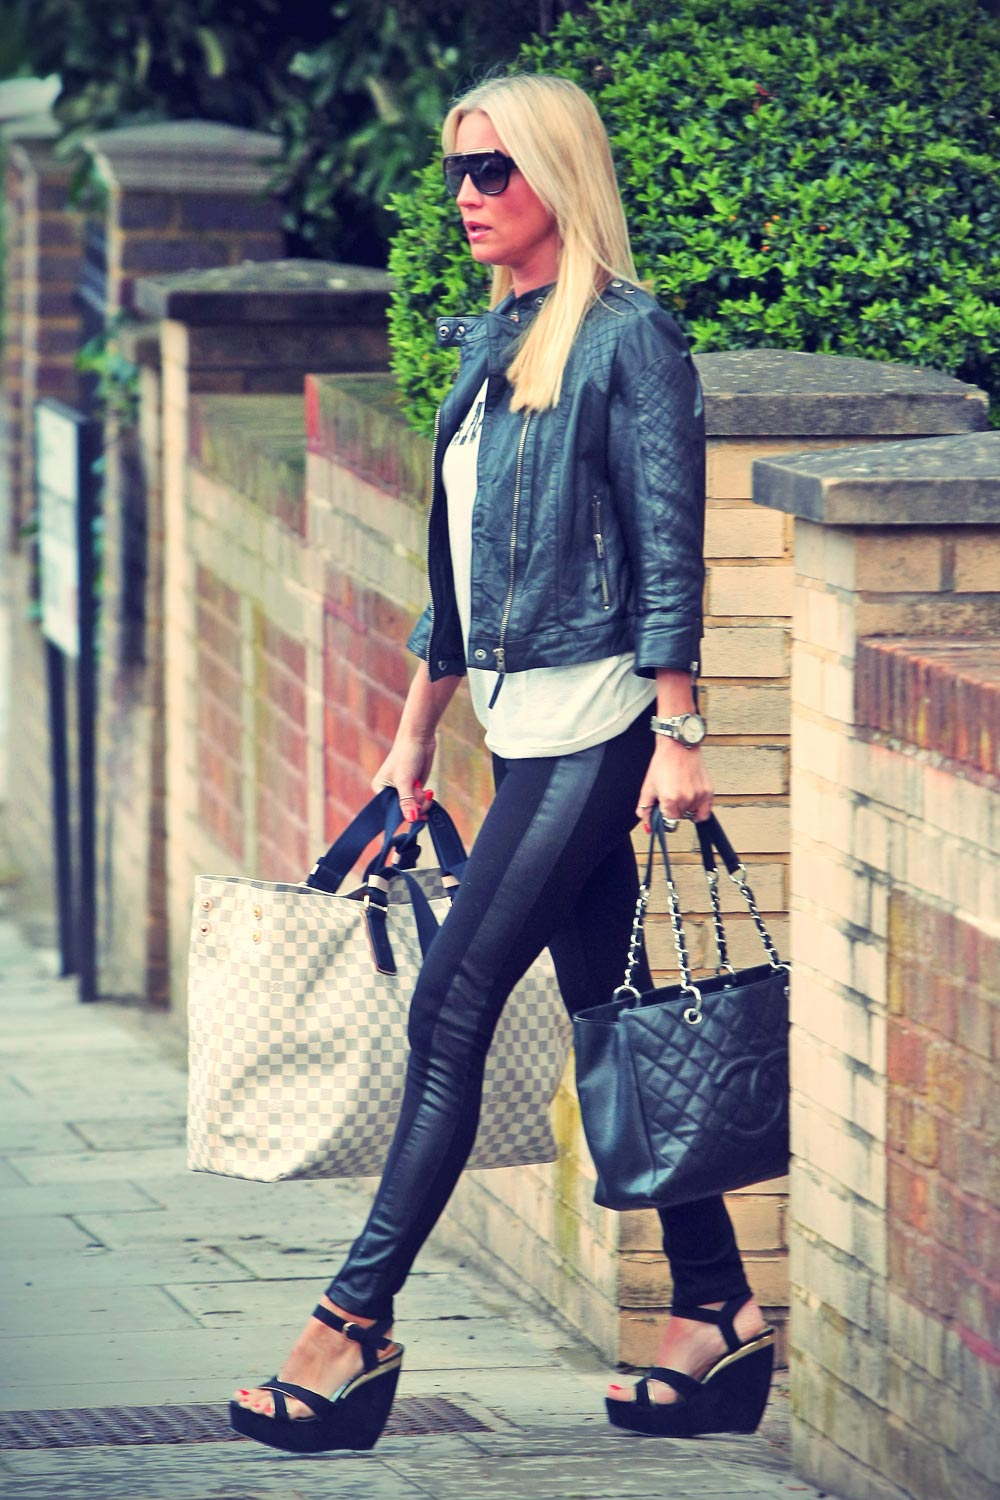 Denise van Outen leaving her London home